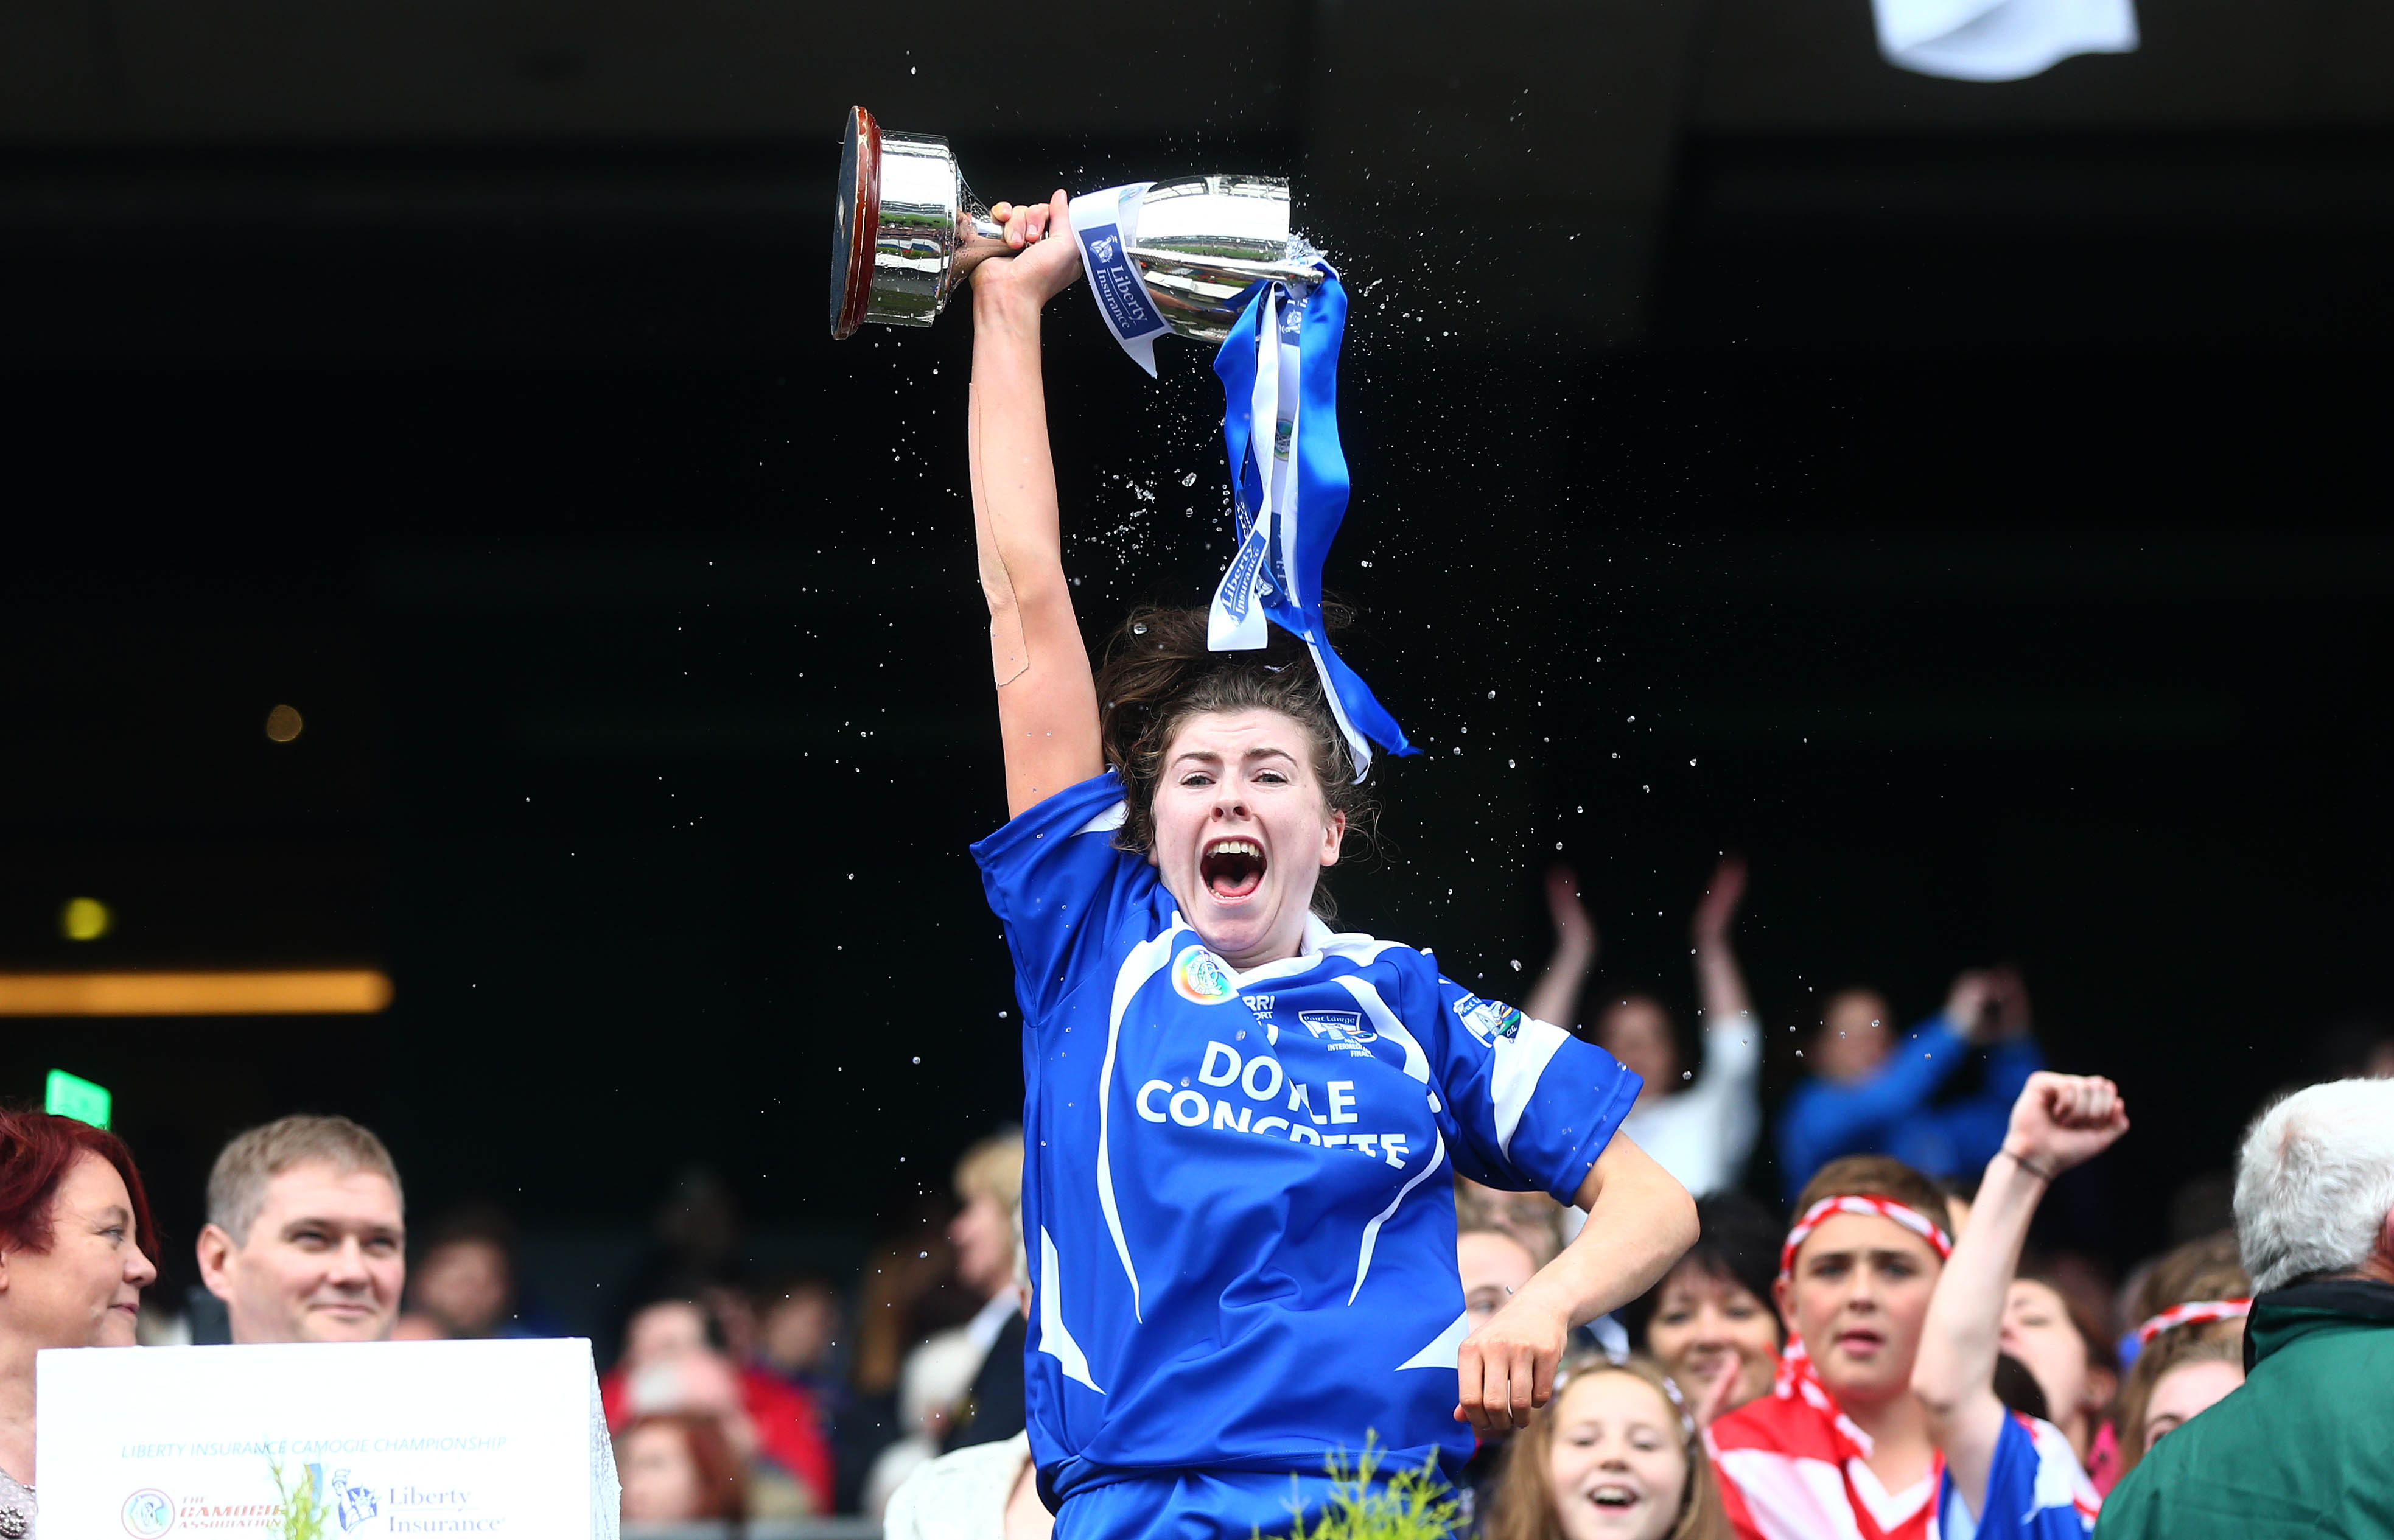 REPRO FREE***PRESS RELEASE NO REPRODUCTION FEE*** Liberty Insurance Intermediate Camogie Championship Final, Croke Park, Dublin 13/9/2015 Waterford vs Kildare Waterford captain Caithriona McGlone life the cup Mandatory Credit ©INPHO/Cathal Noonan